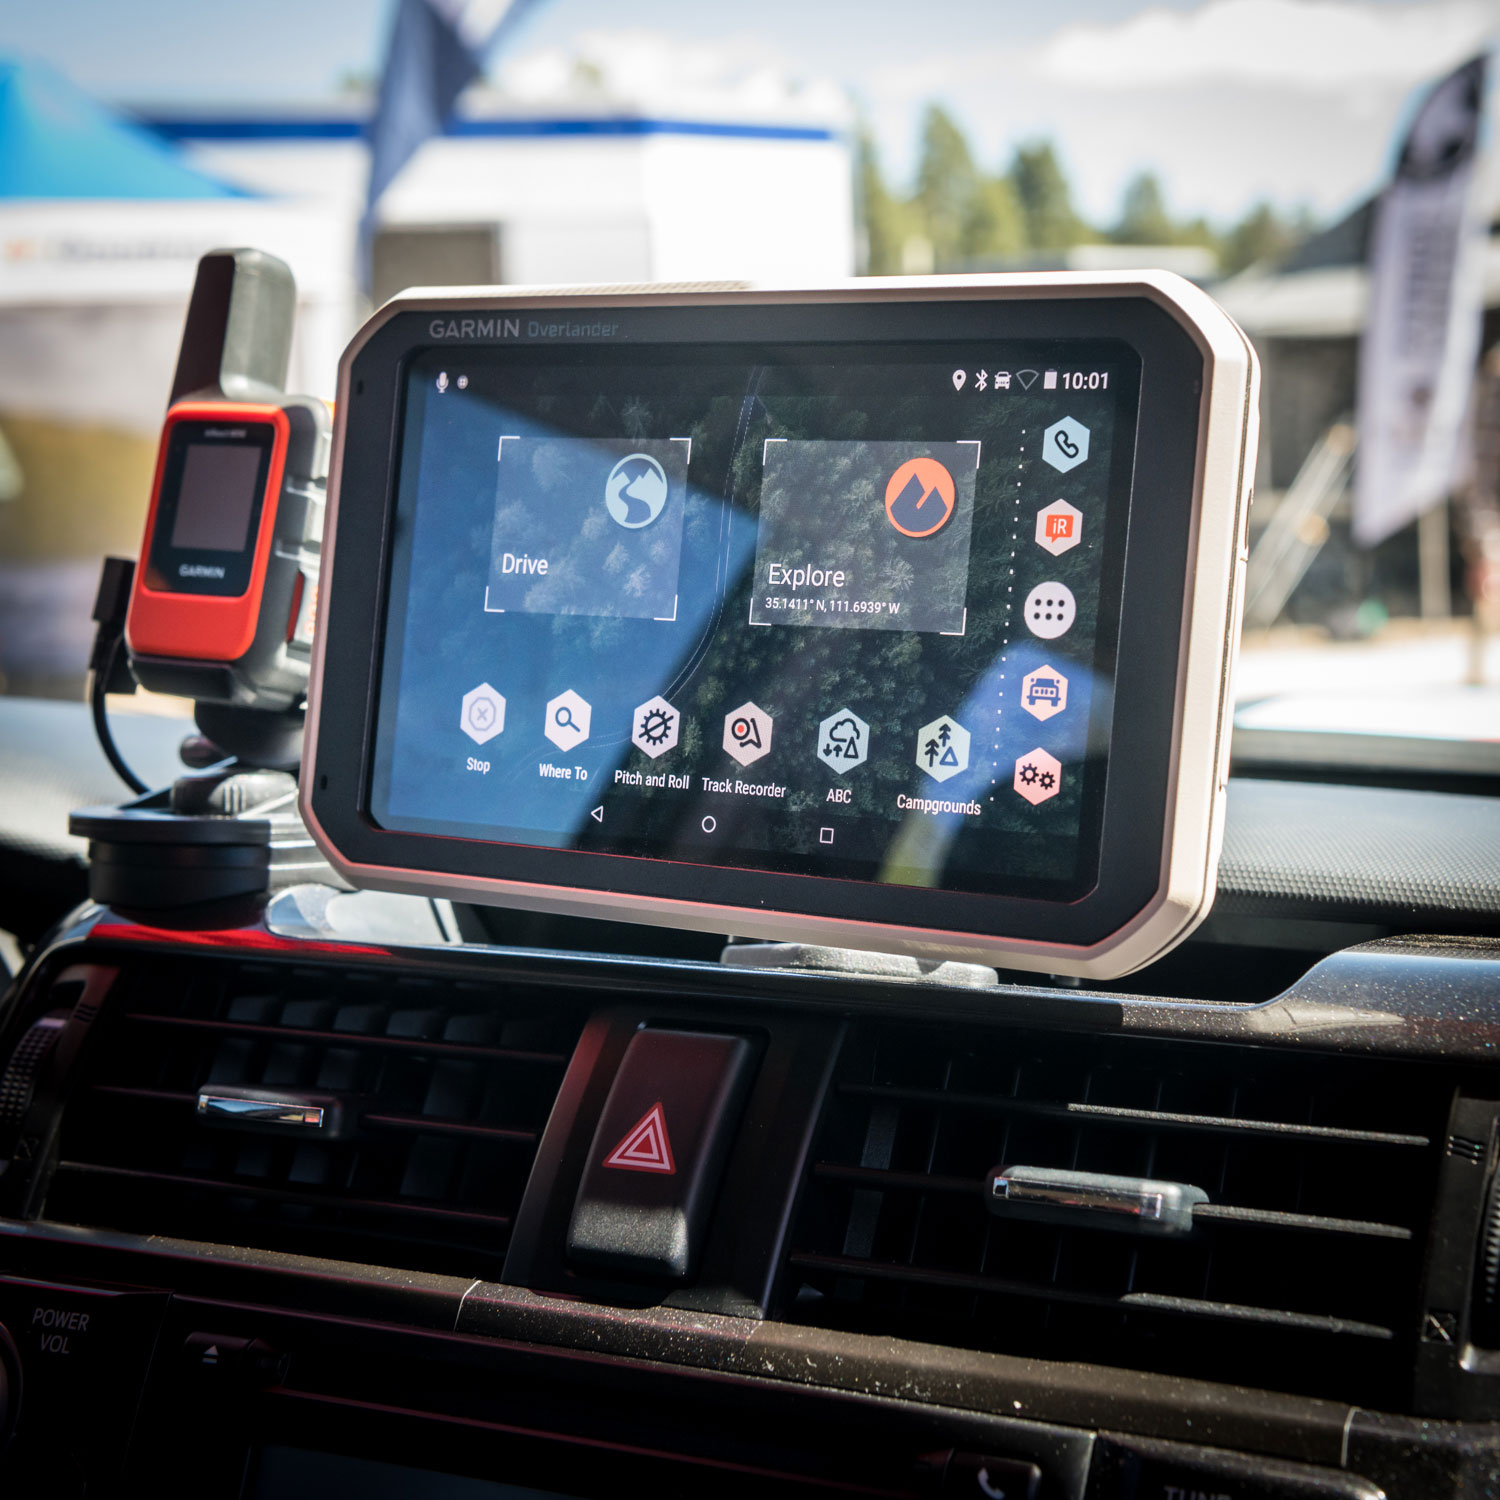 Garmin Overlander All-Terrain GPS Is The Gladiator Of Navigators